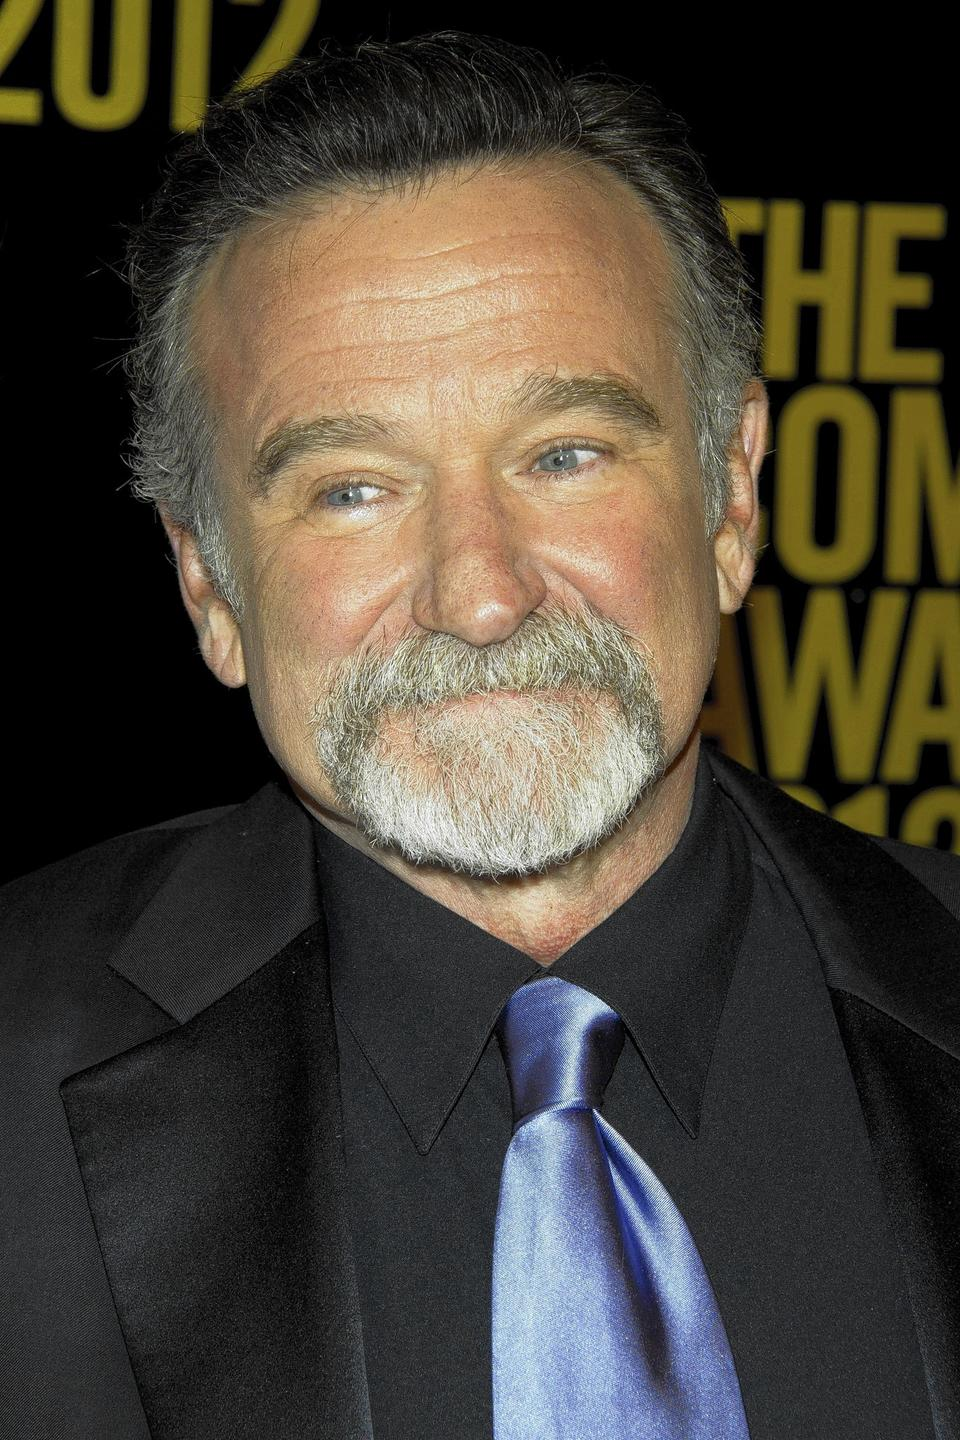 Robin Williams appears onstage at the 2012 Comedy Awards in New York.